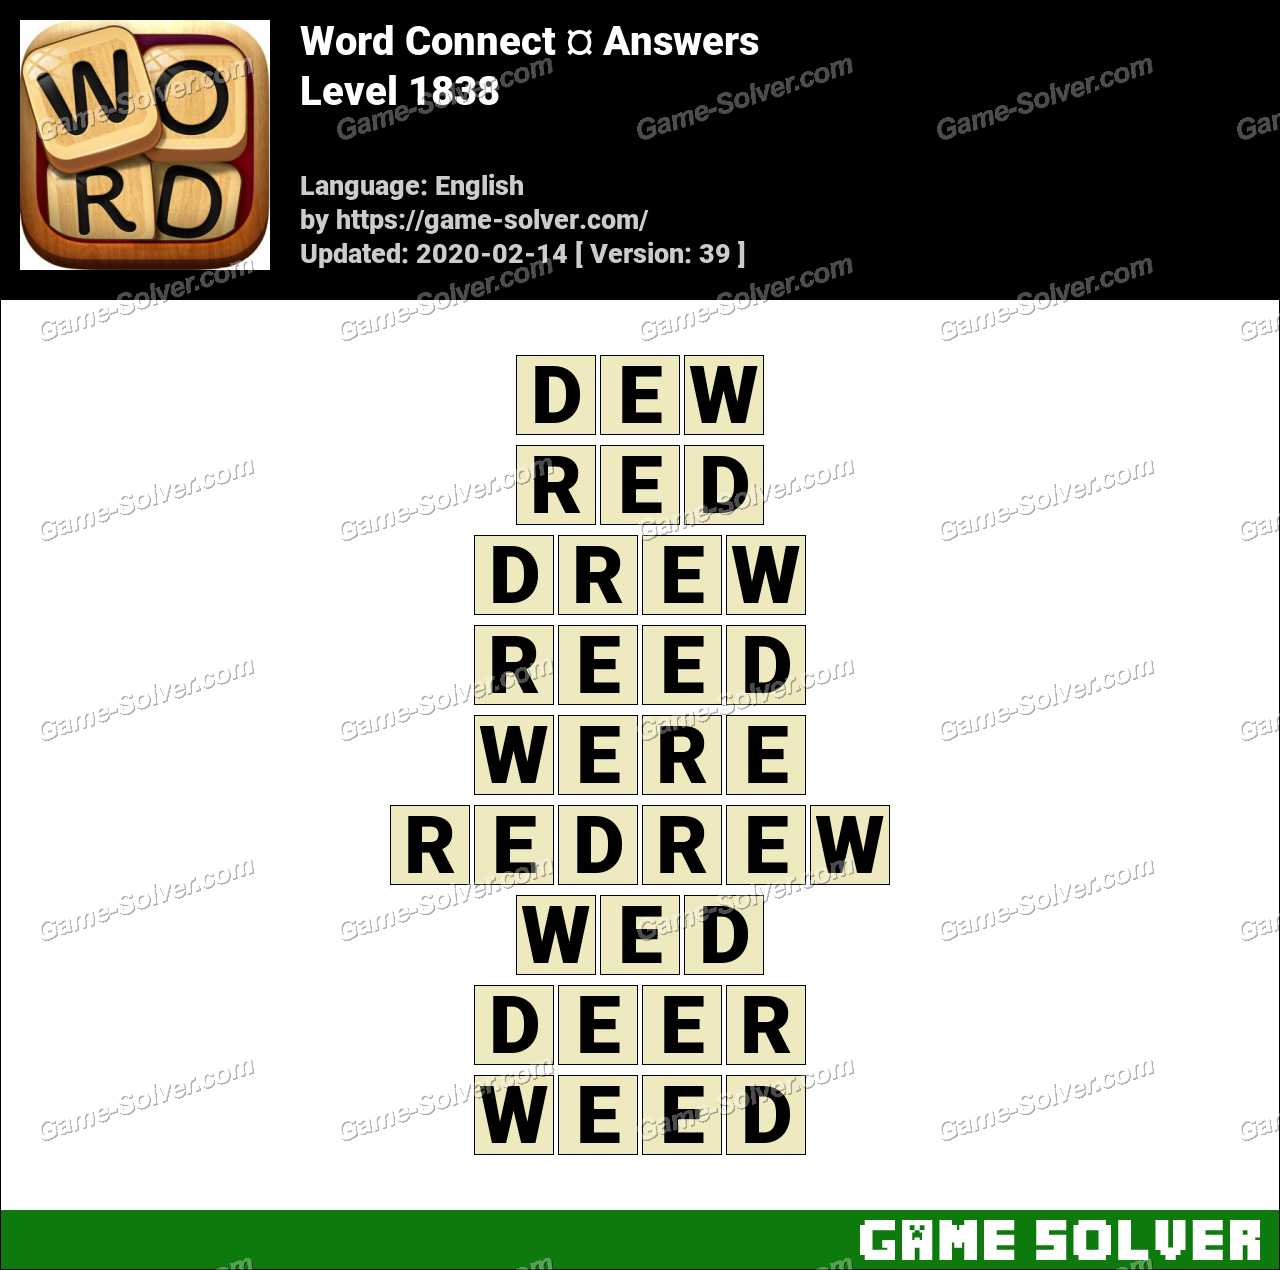 Word Connect Level 1838 Answers